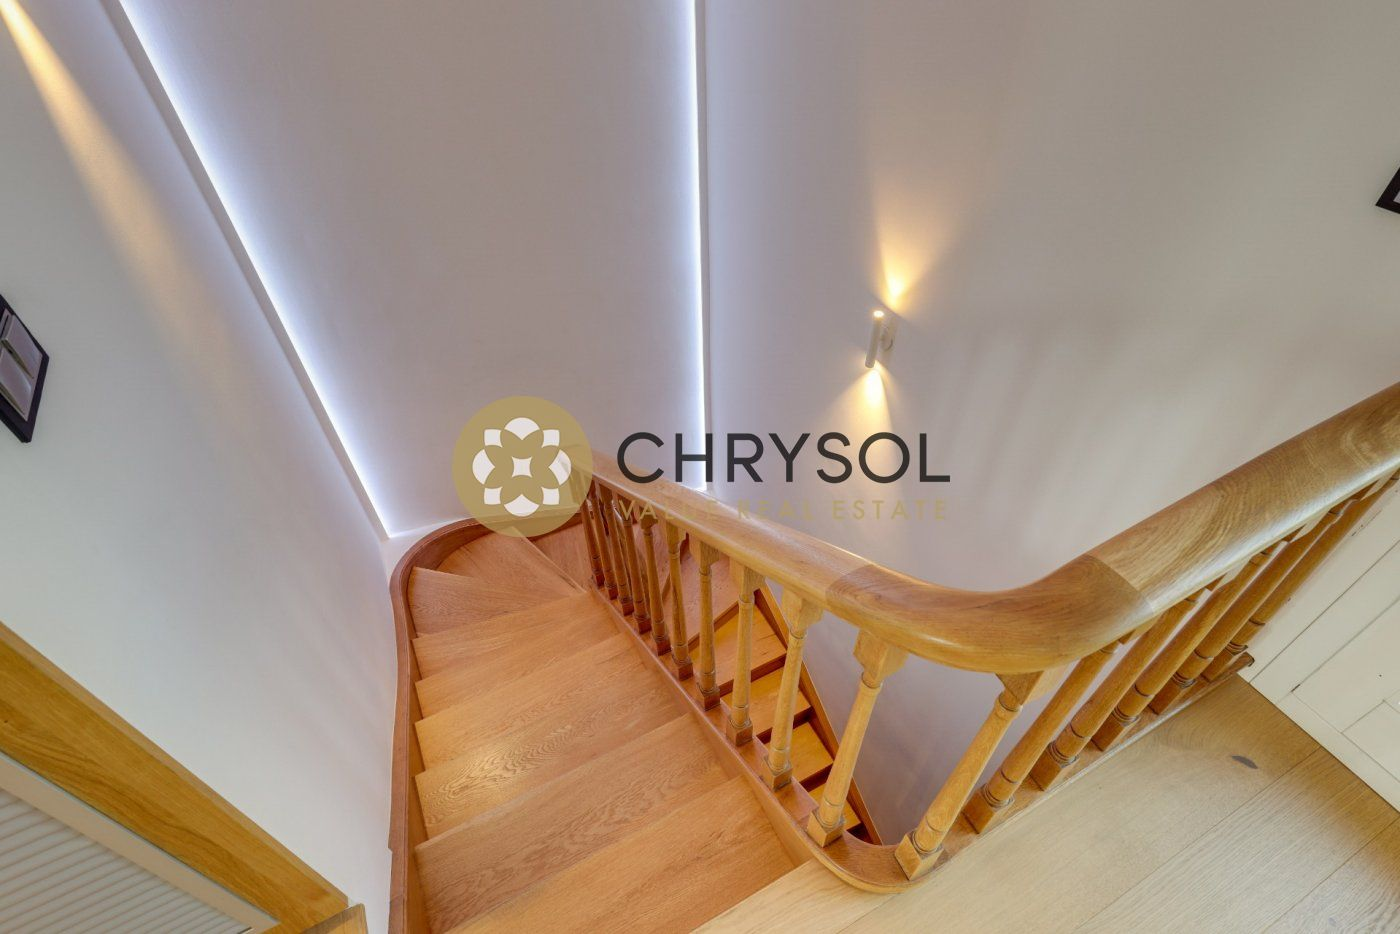 Photogallery - 46 - Chrysol Value